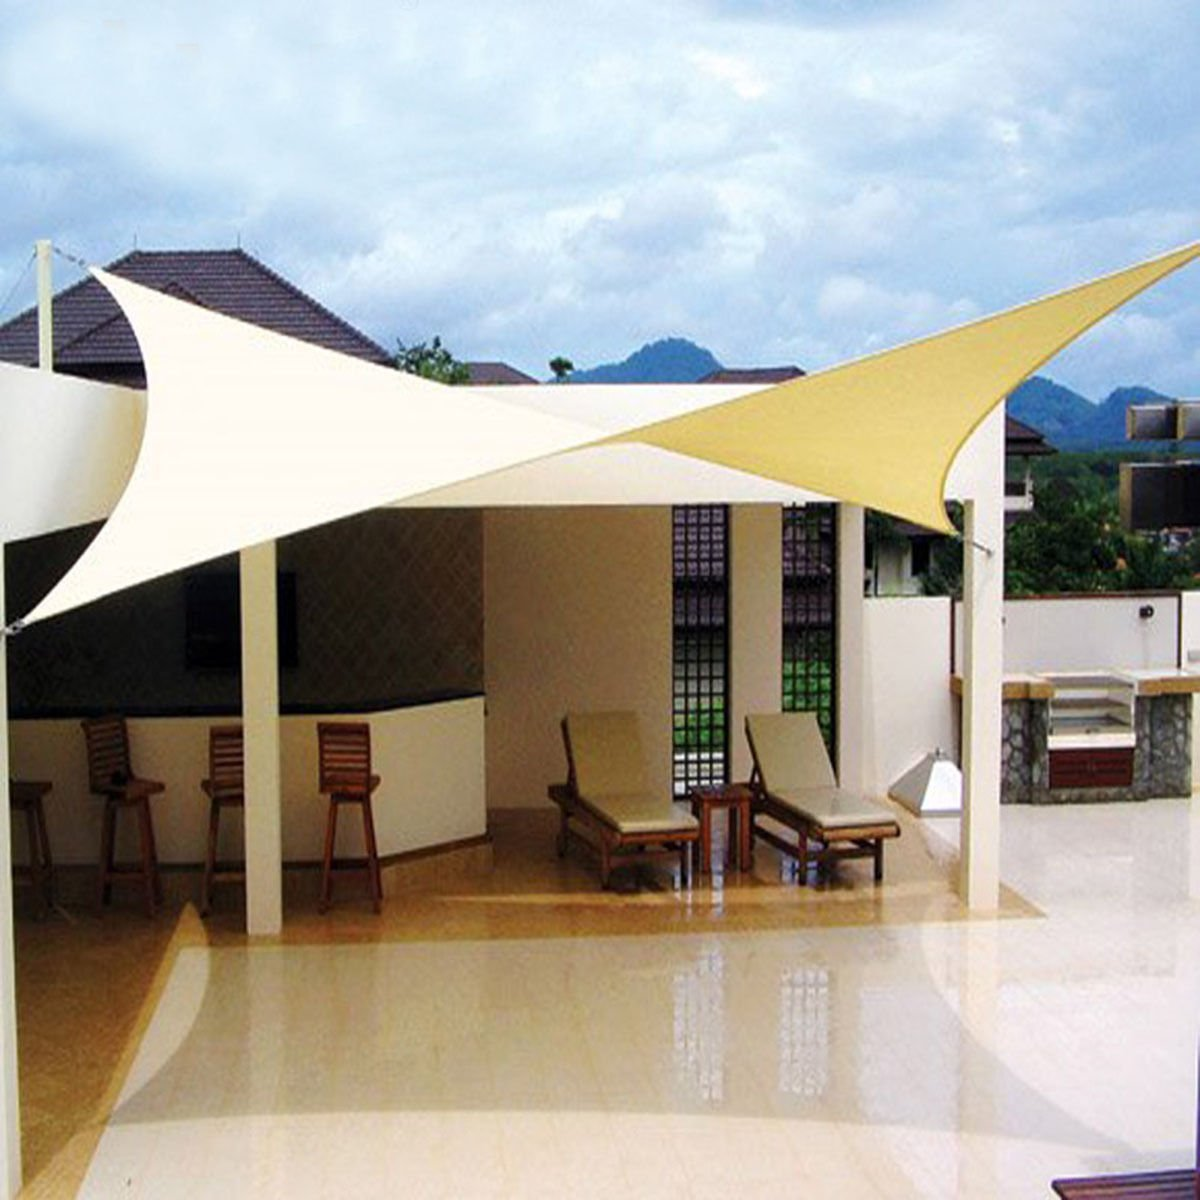 decoration posts bed plans sails awning rectangle patio awnings for outdoor triangle coolaroo with ideas shade pet sail